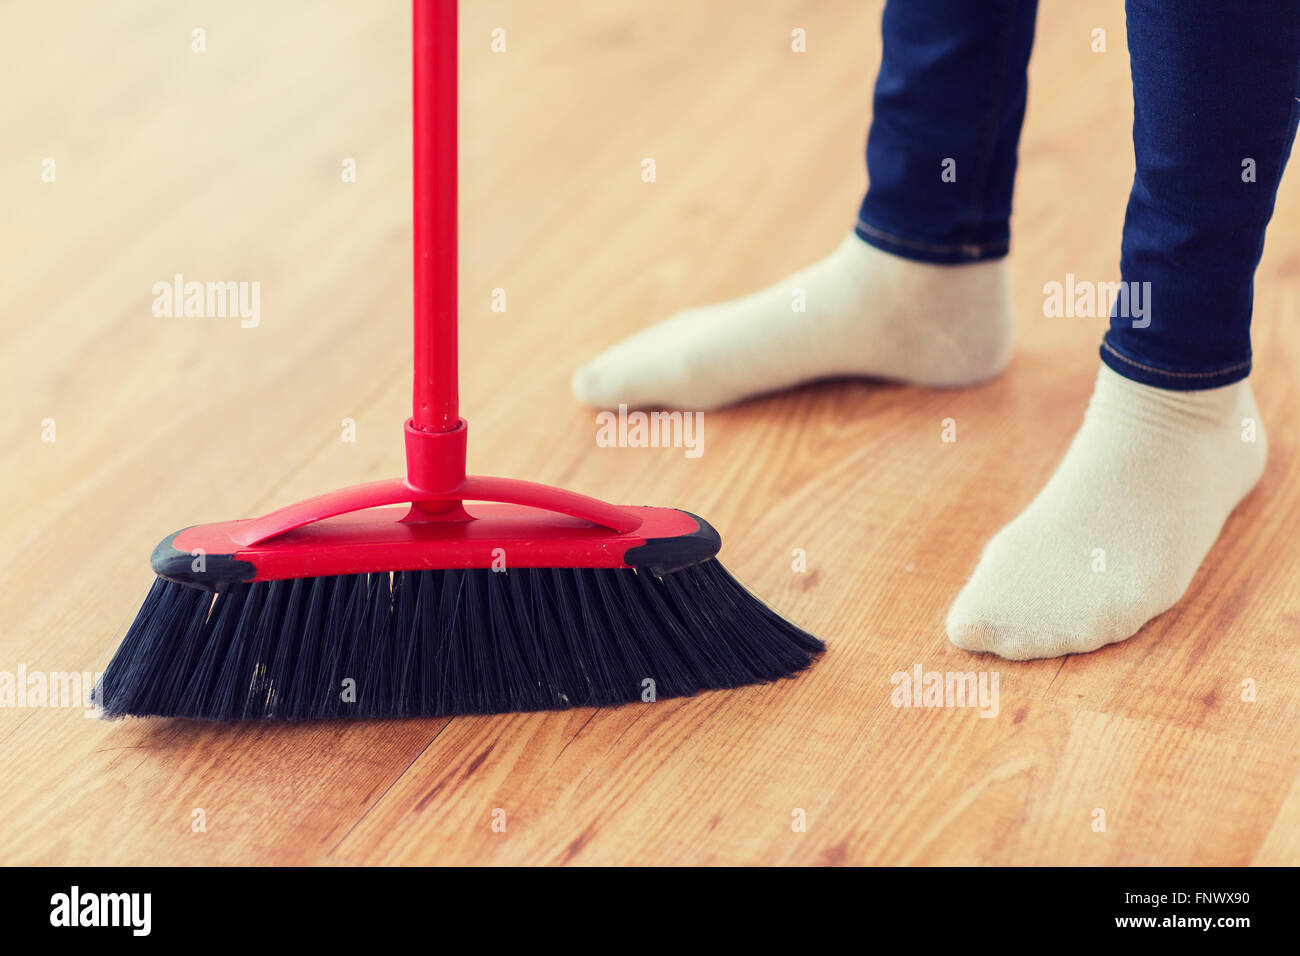 broom sweeping floor high resolution stock photography and images alamy https www alamy com stock photo close up of woman legs with broom sweeping floor 99529052 html